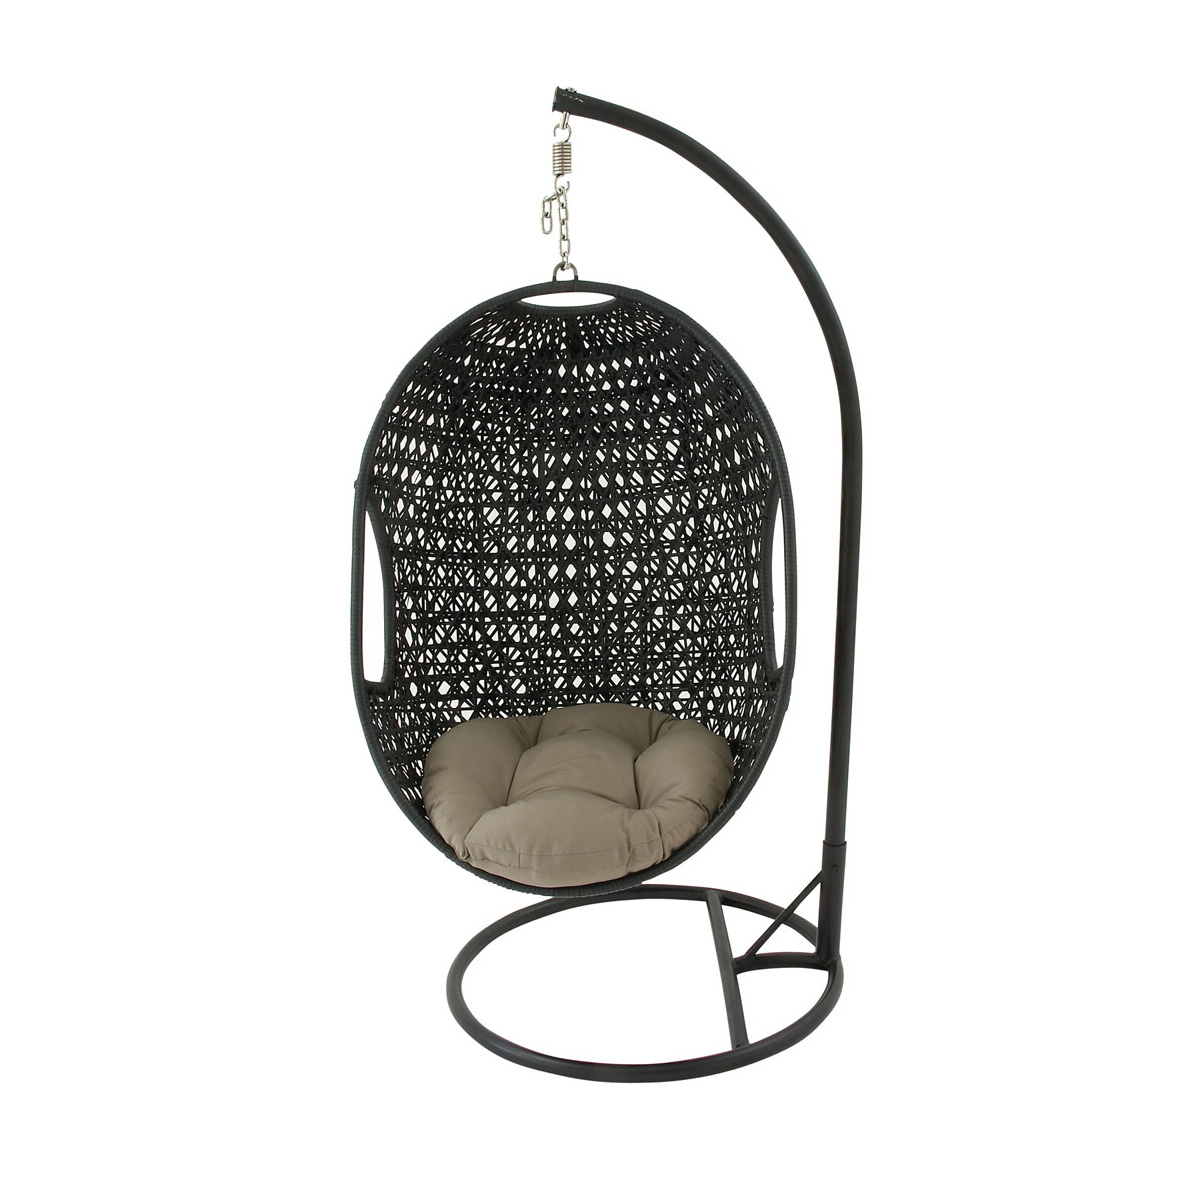 Hanging Egg Chair Outdoor Rotan Egg Chair